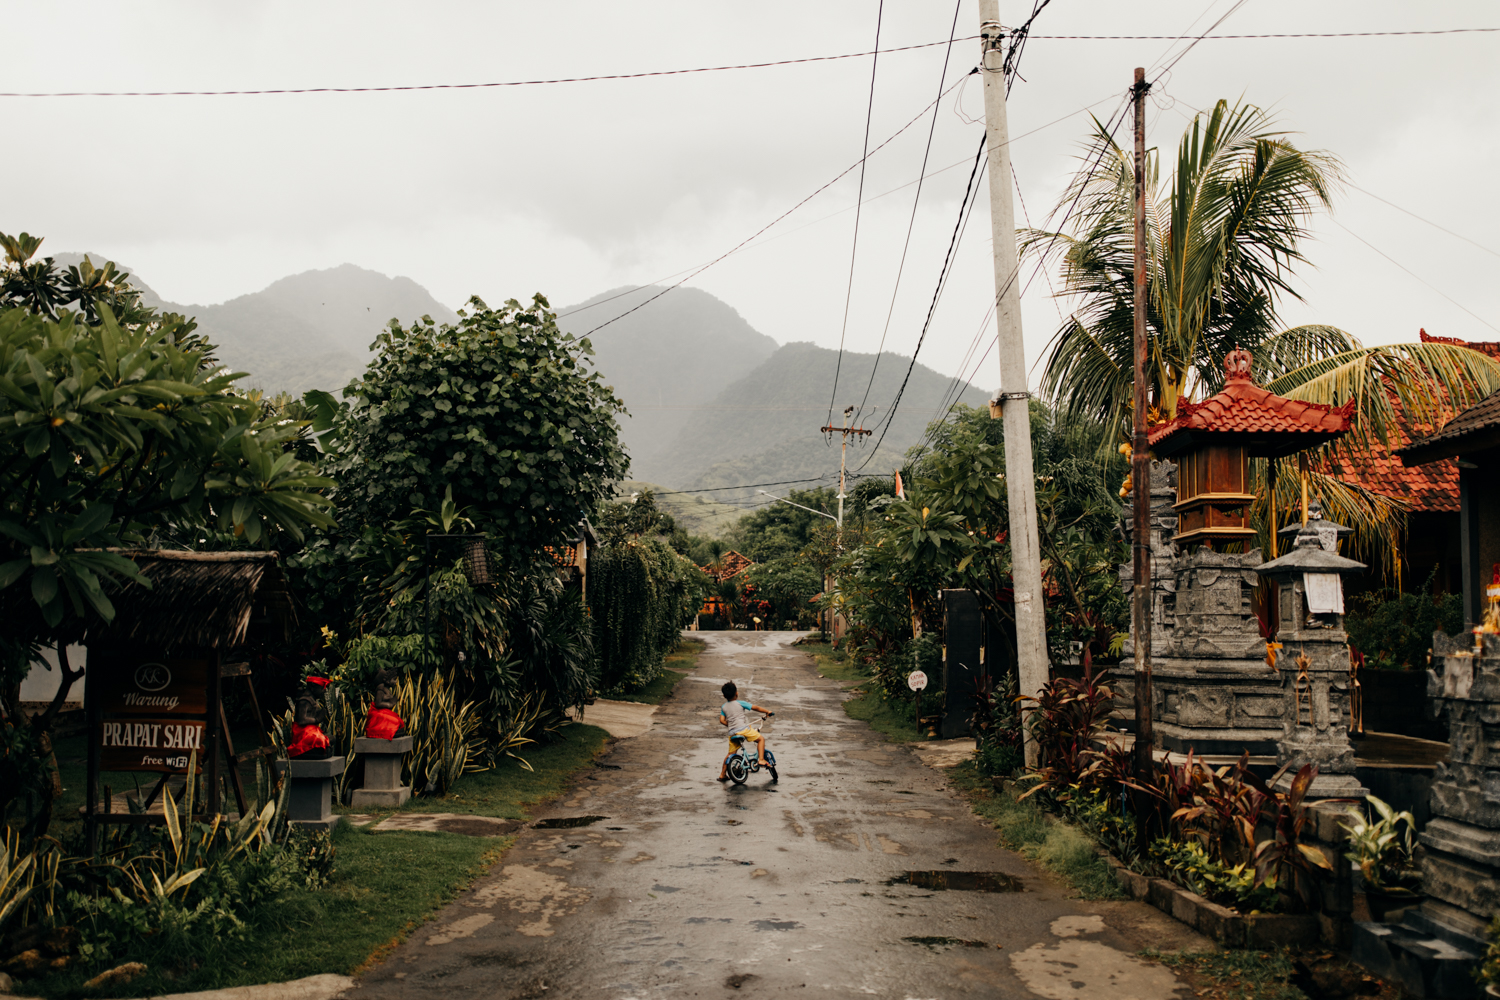 Kid on road with mountain in the background in Bali, Indonesia